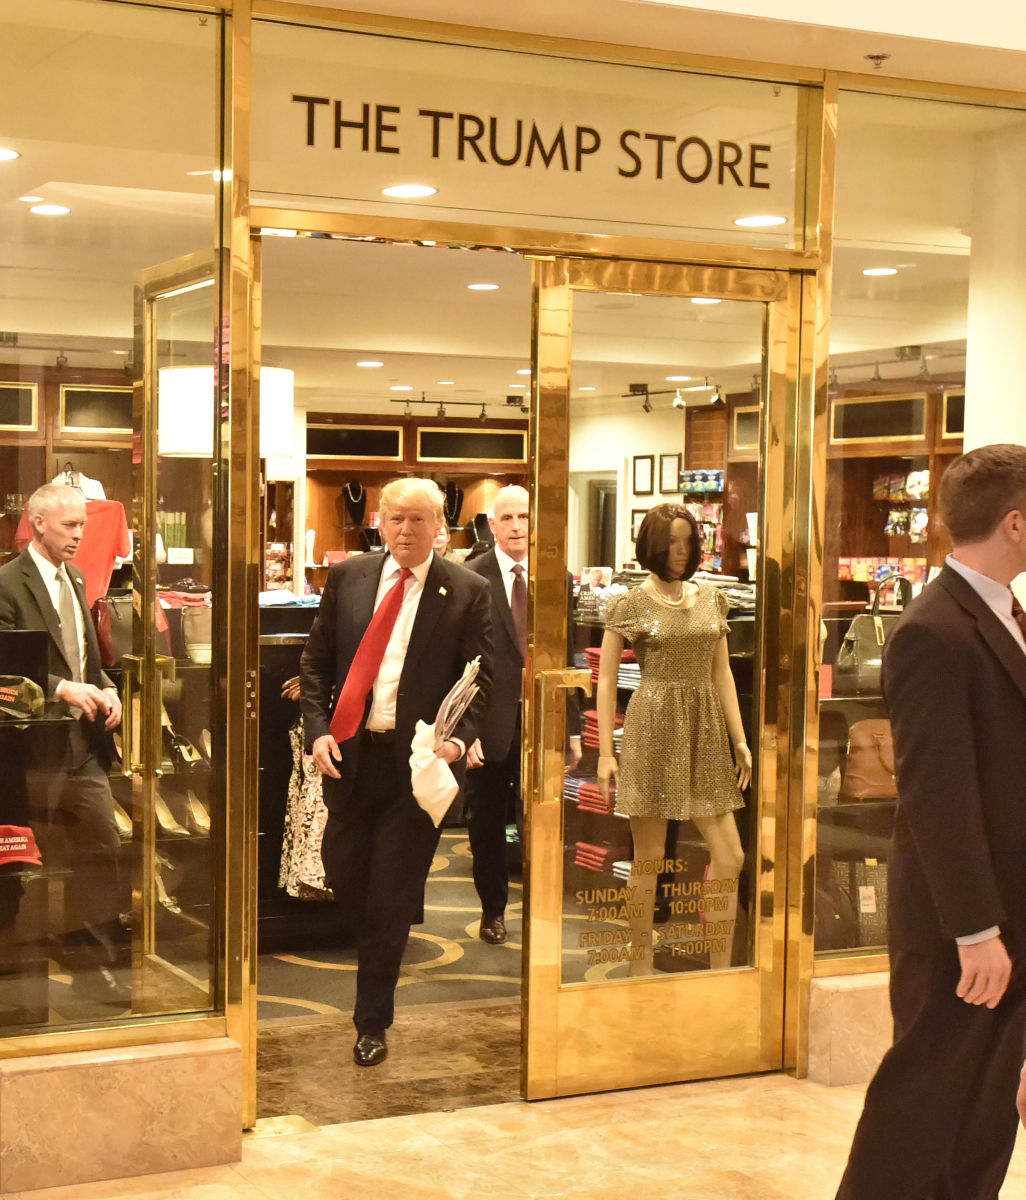 President Elect Donald Trump departs the Trump Store inside the Trump Hotel in Las Vegas, NV.